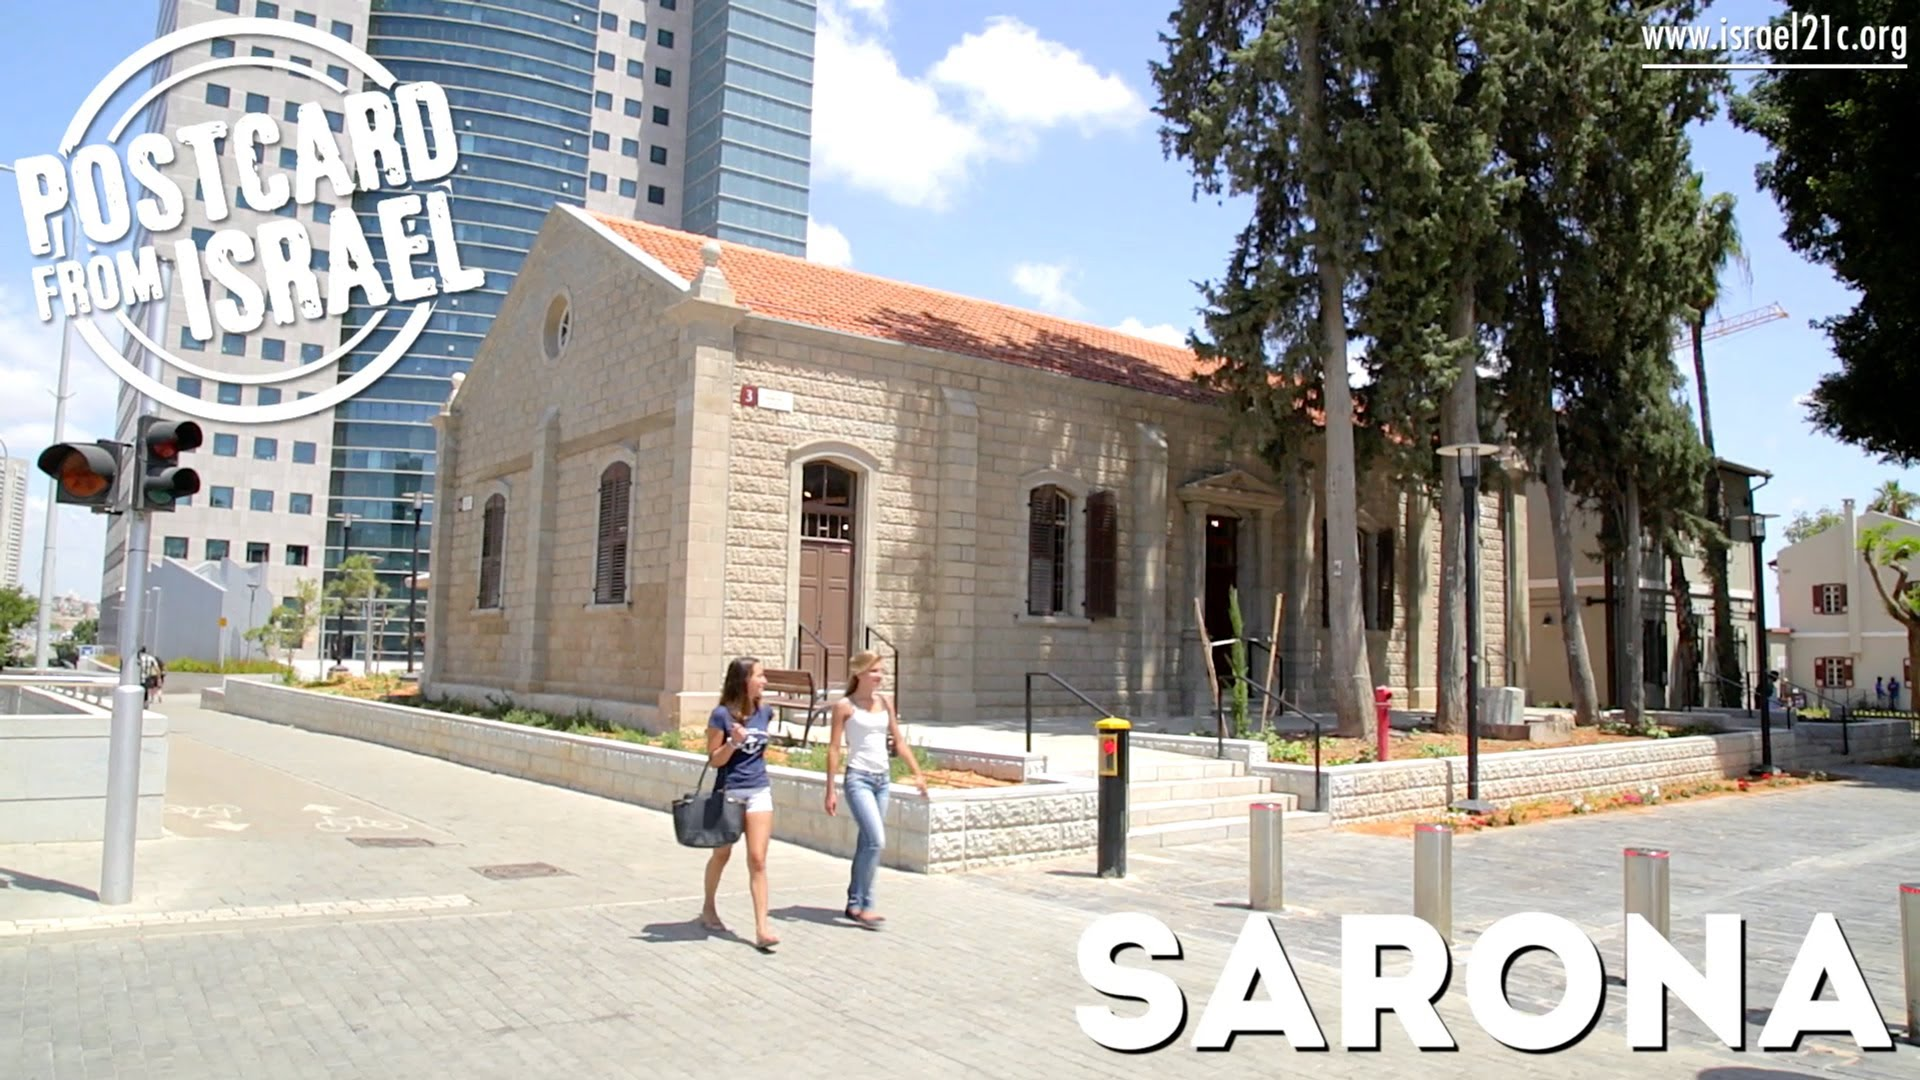 Postcard from Israel – Sarona in Tel Aviv